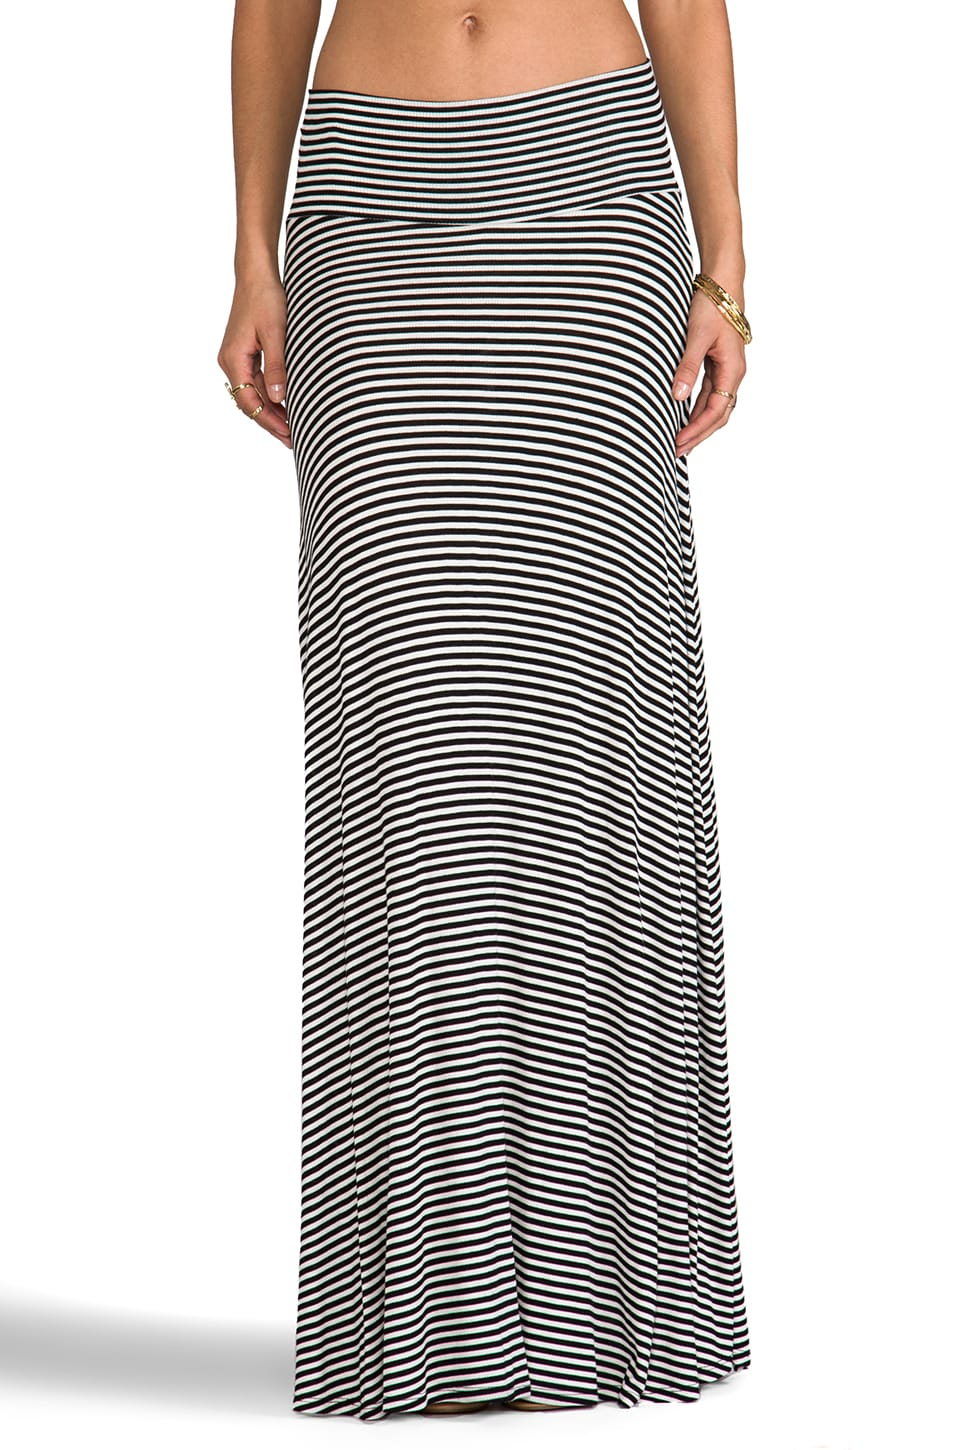 Rachel Pally Rib Long Full Skirt in Cream Stripe